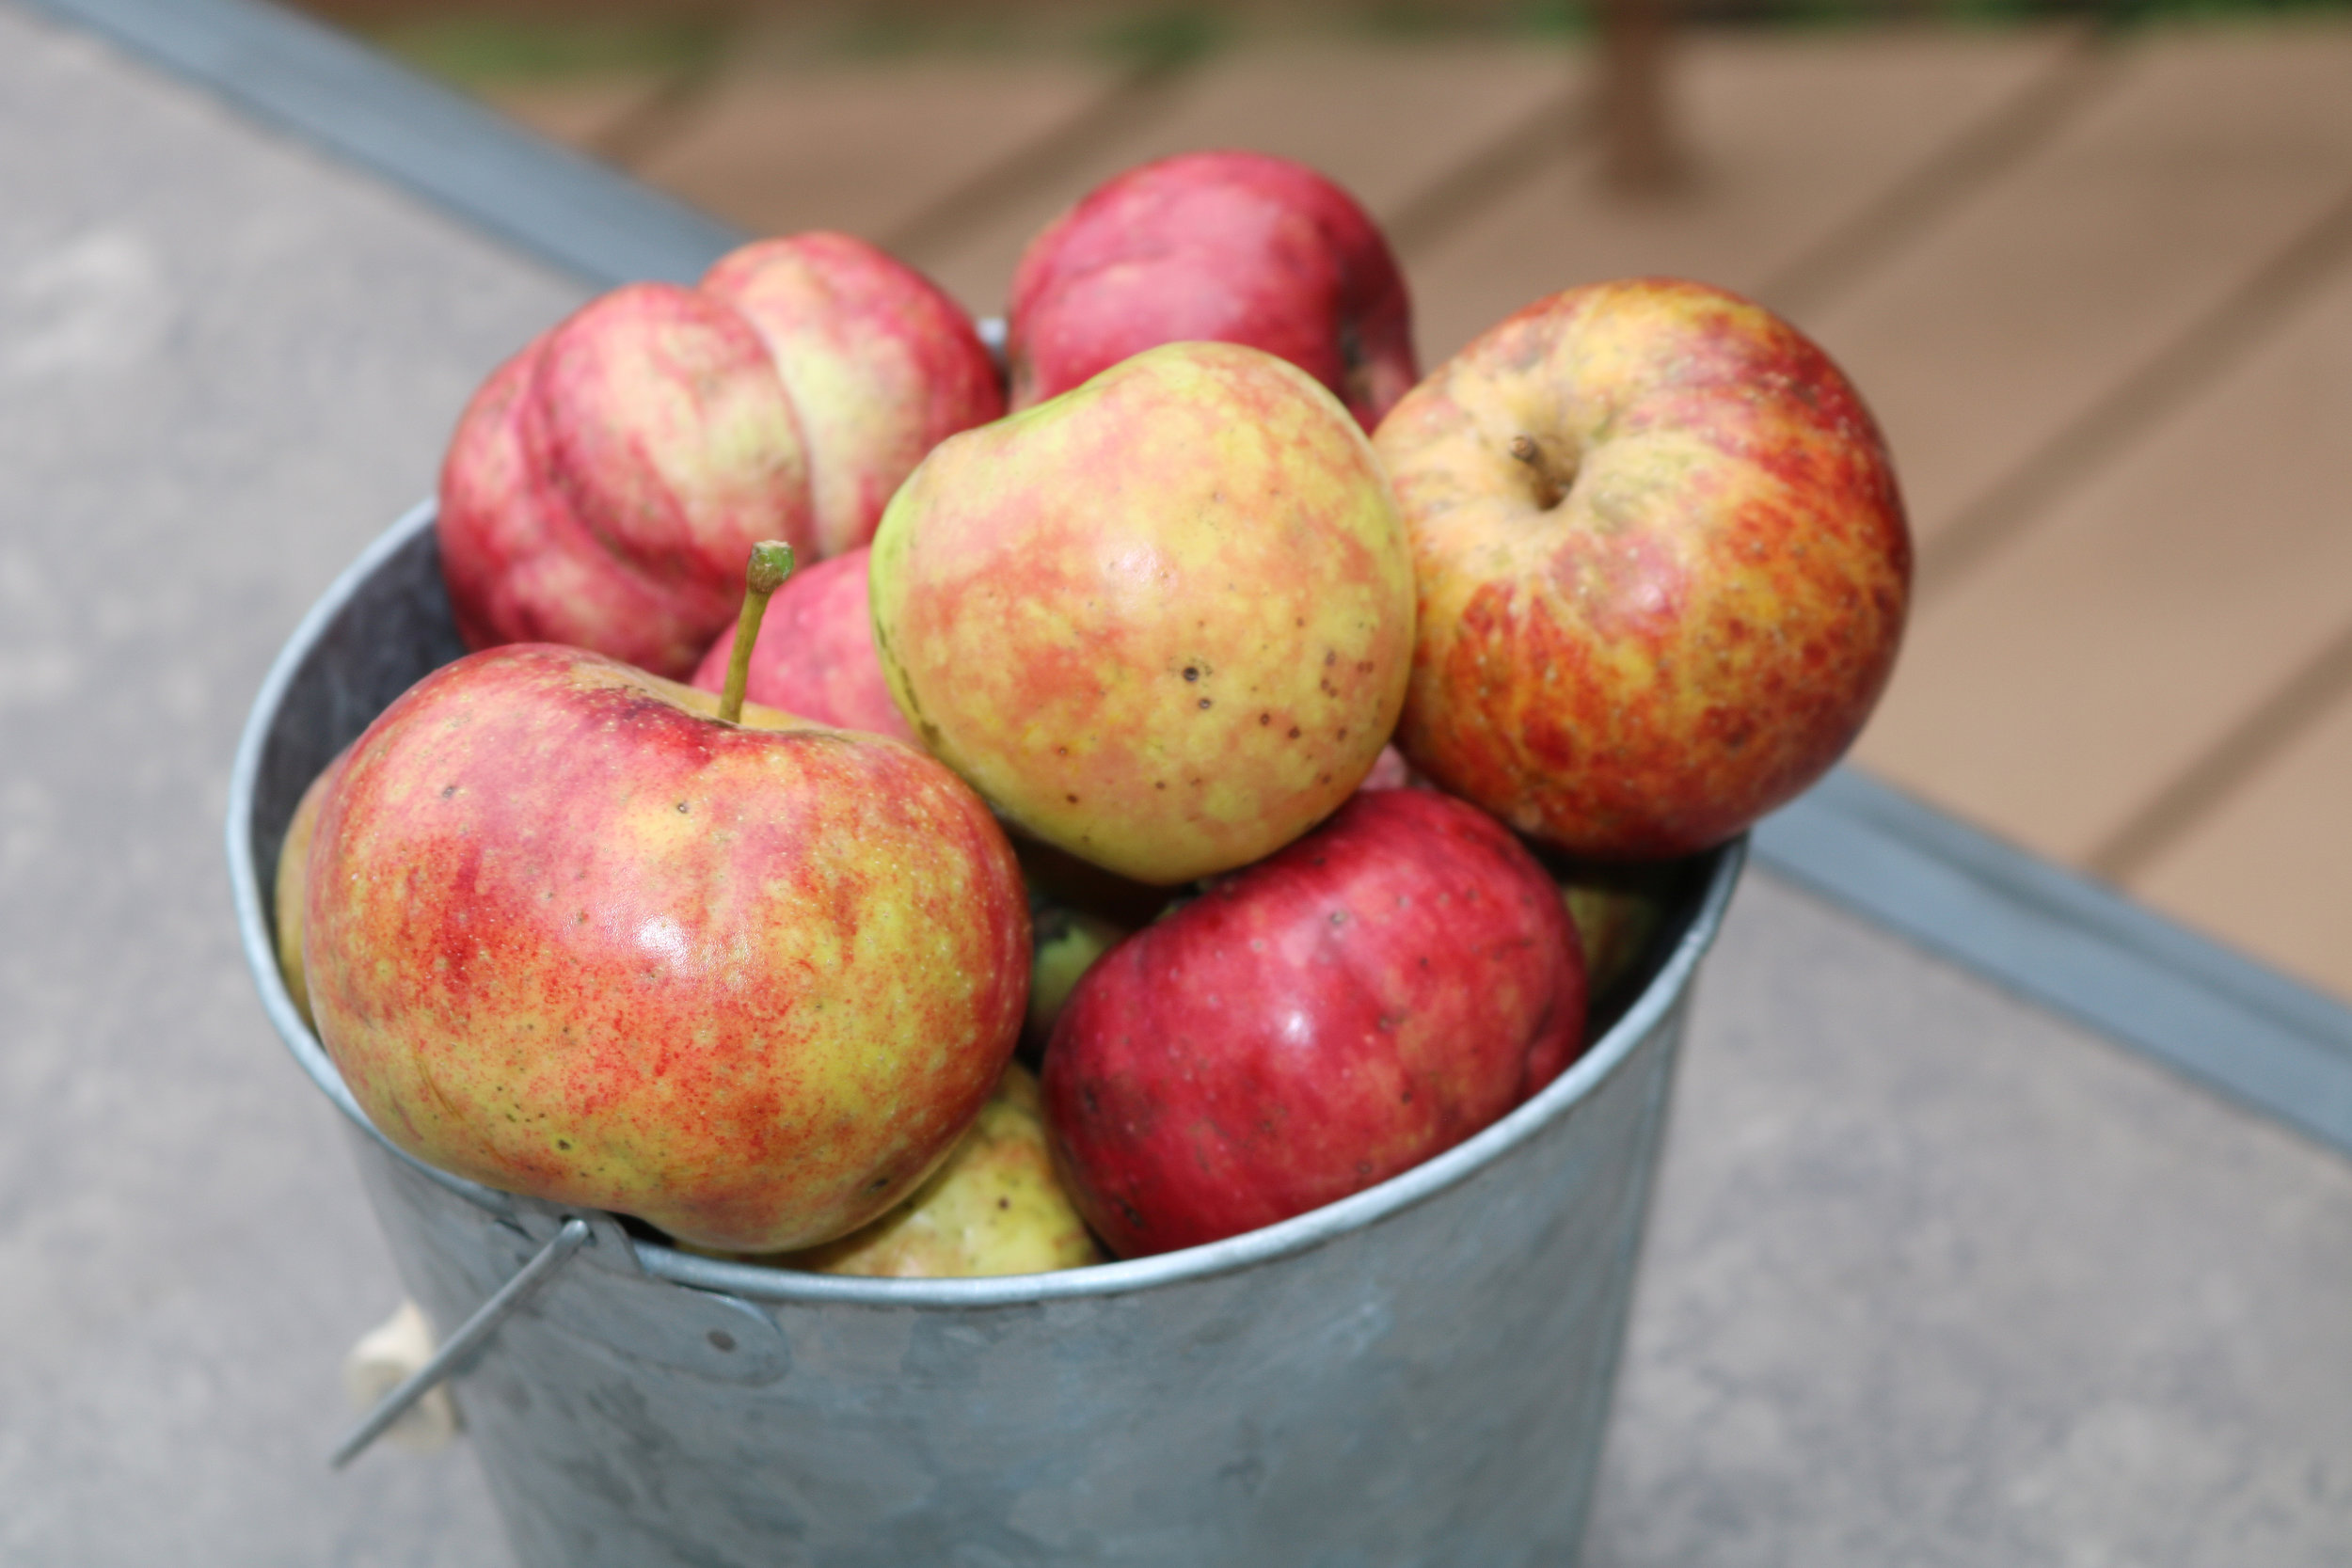 A bucket of apples from Seed Savers Exchange's Historic Orchard.